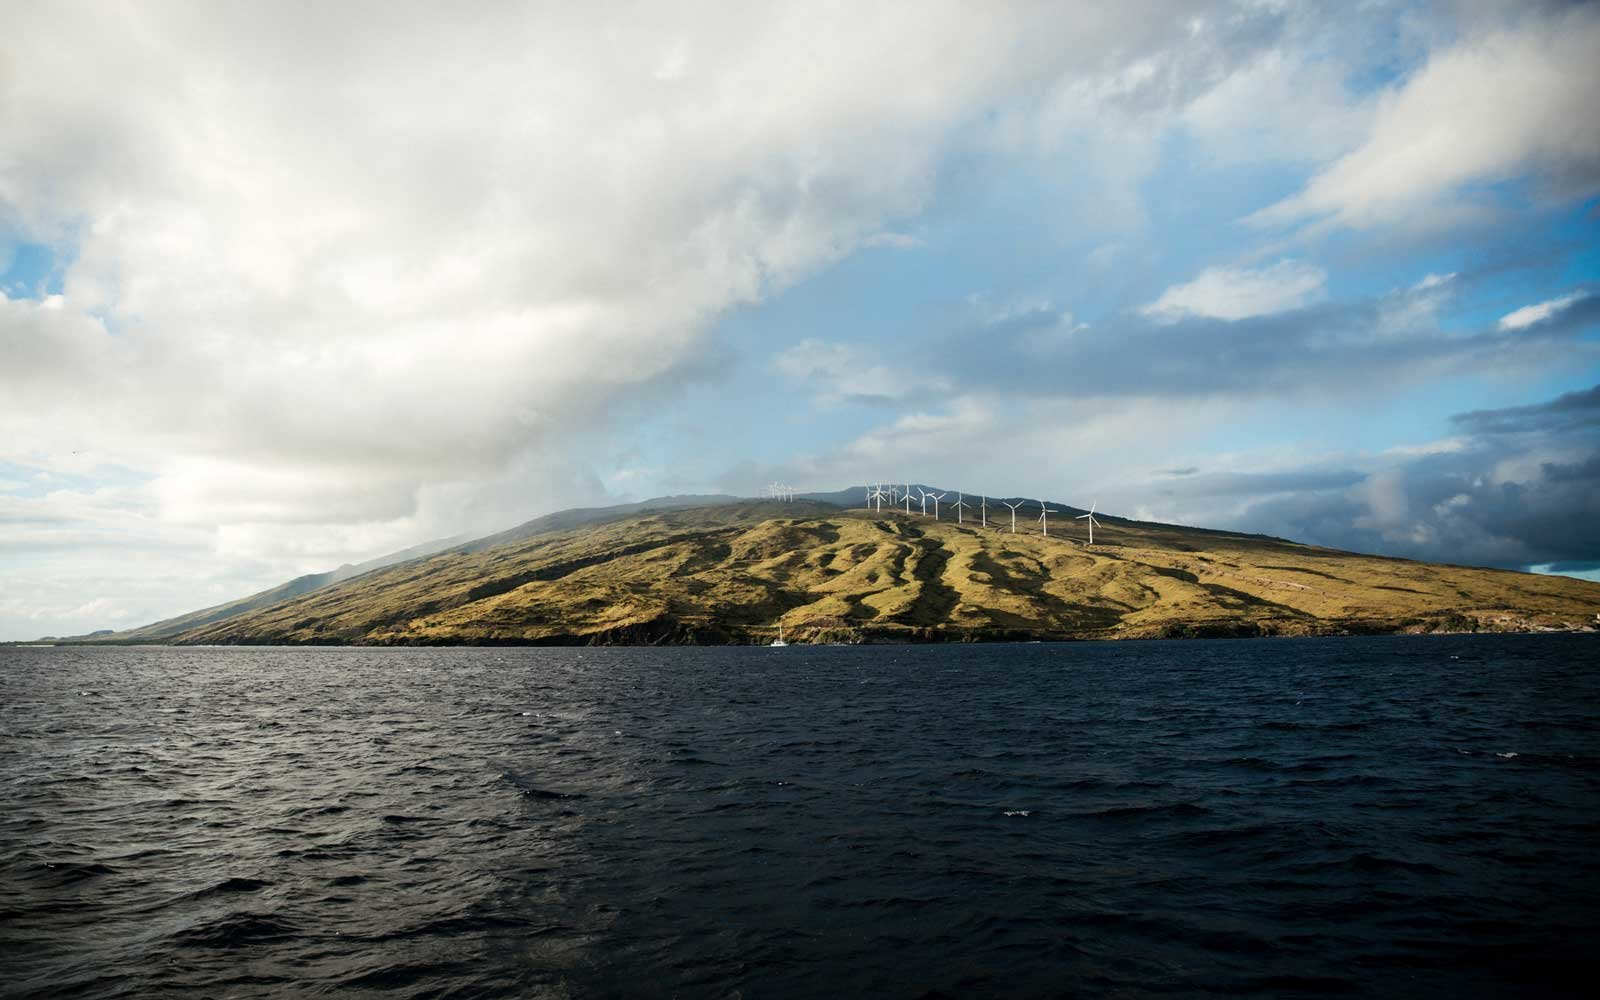 Wind turbine Maui coast